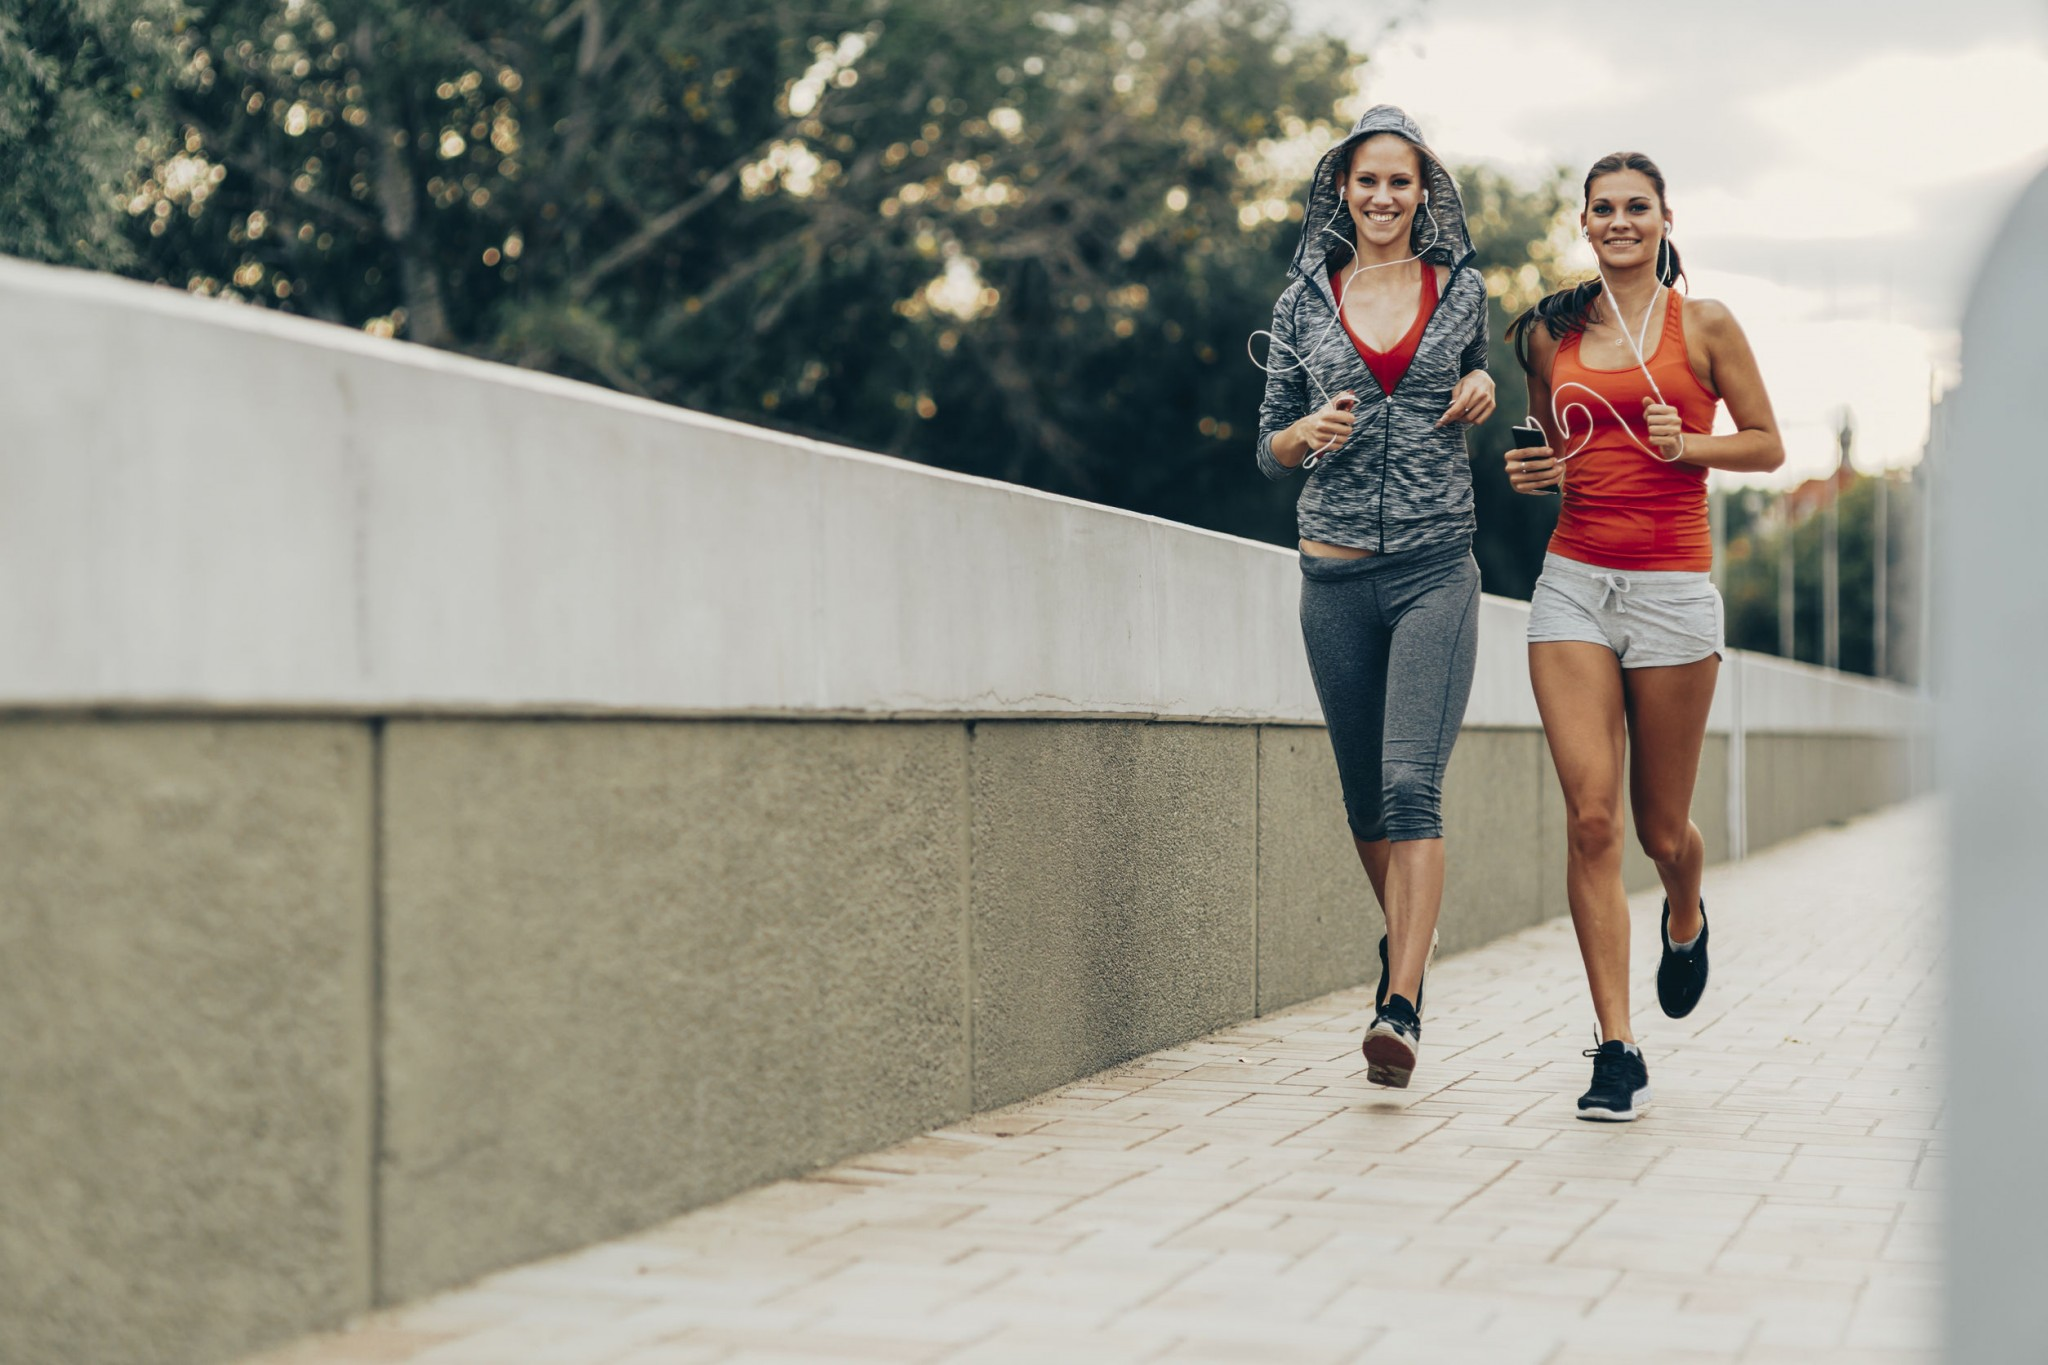 Beautiful women jogging in city while sun is setting down